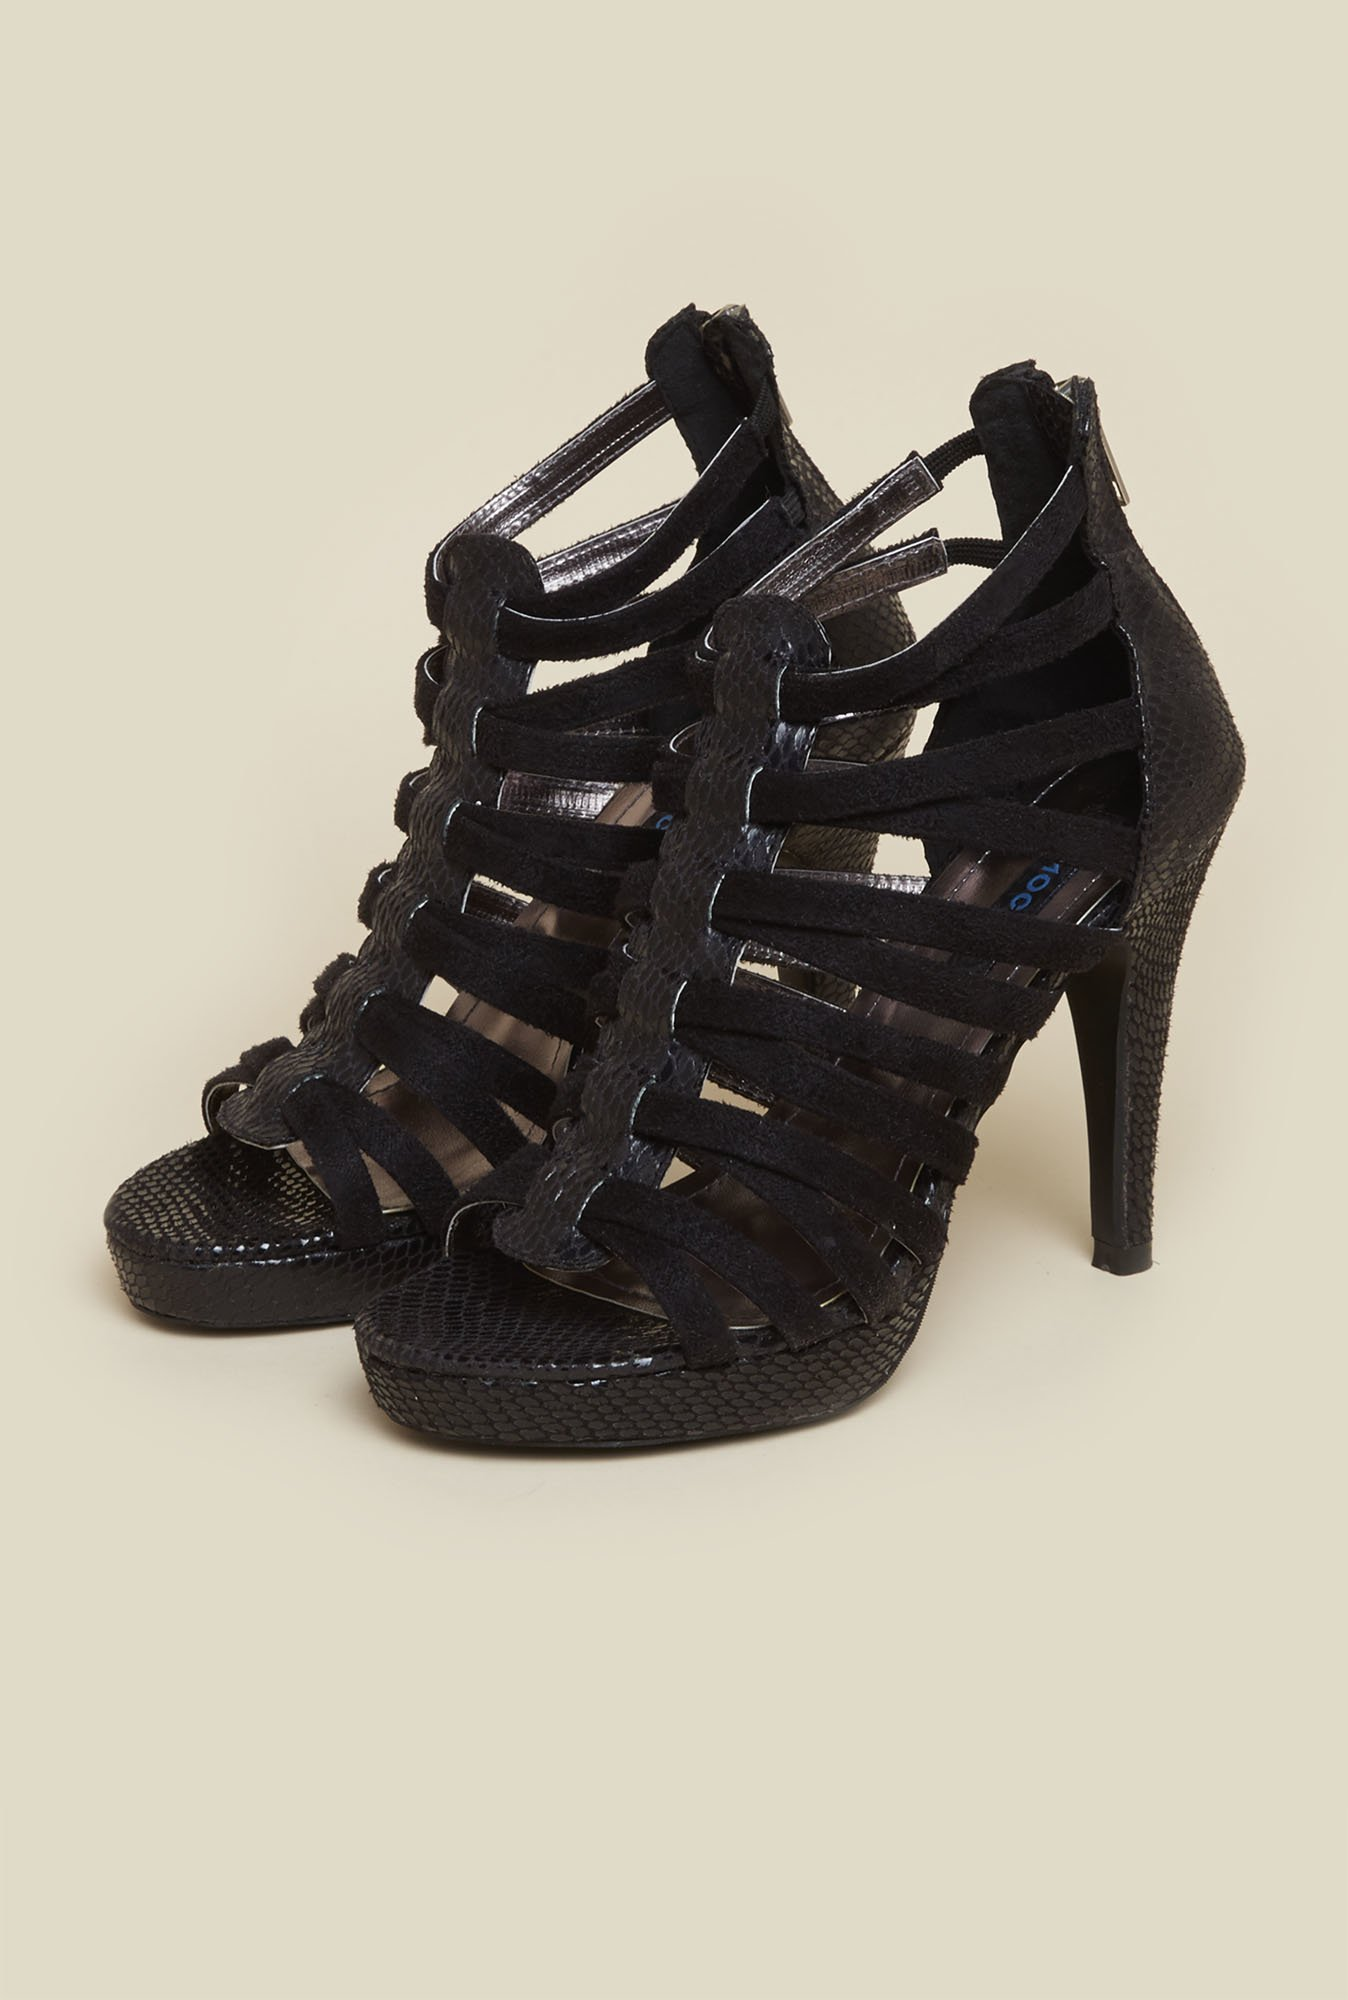 Mochi Black Gladiator Stiletto Sandals